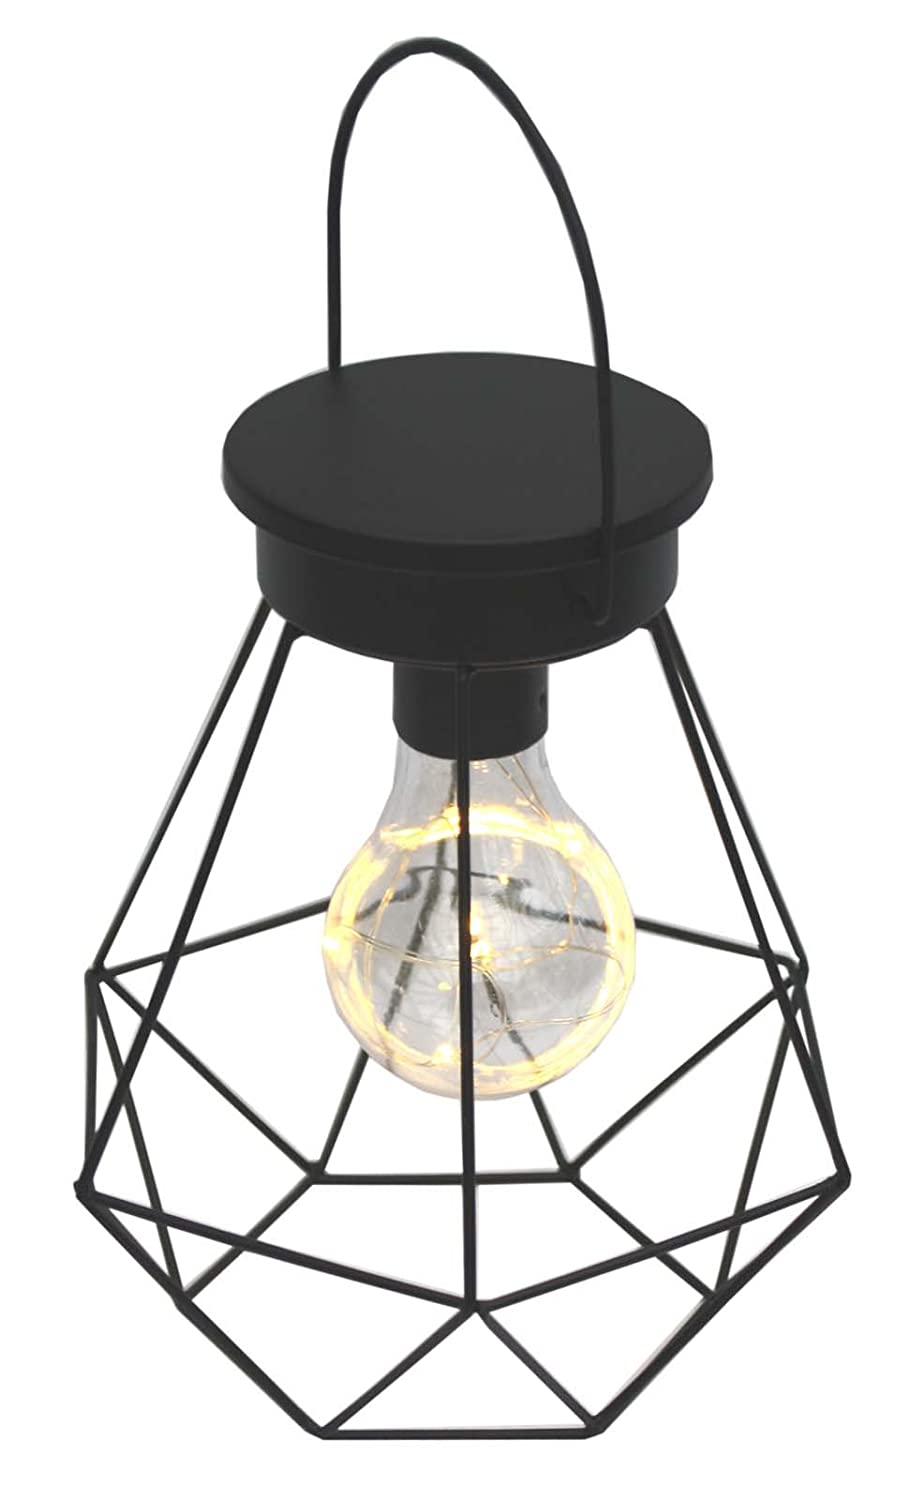 Retro Hanging or Table Top Black Wire Lamp with LED Bulb - Battery Operated marymarygardens